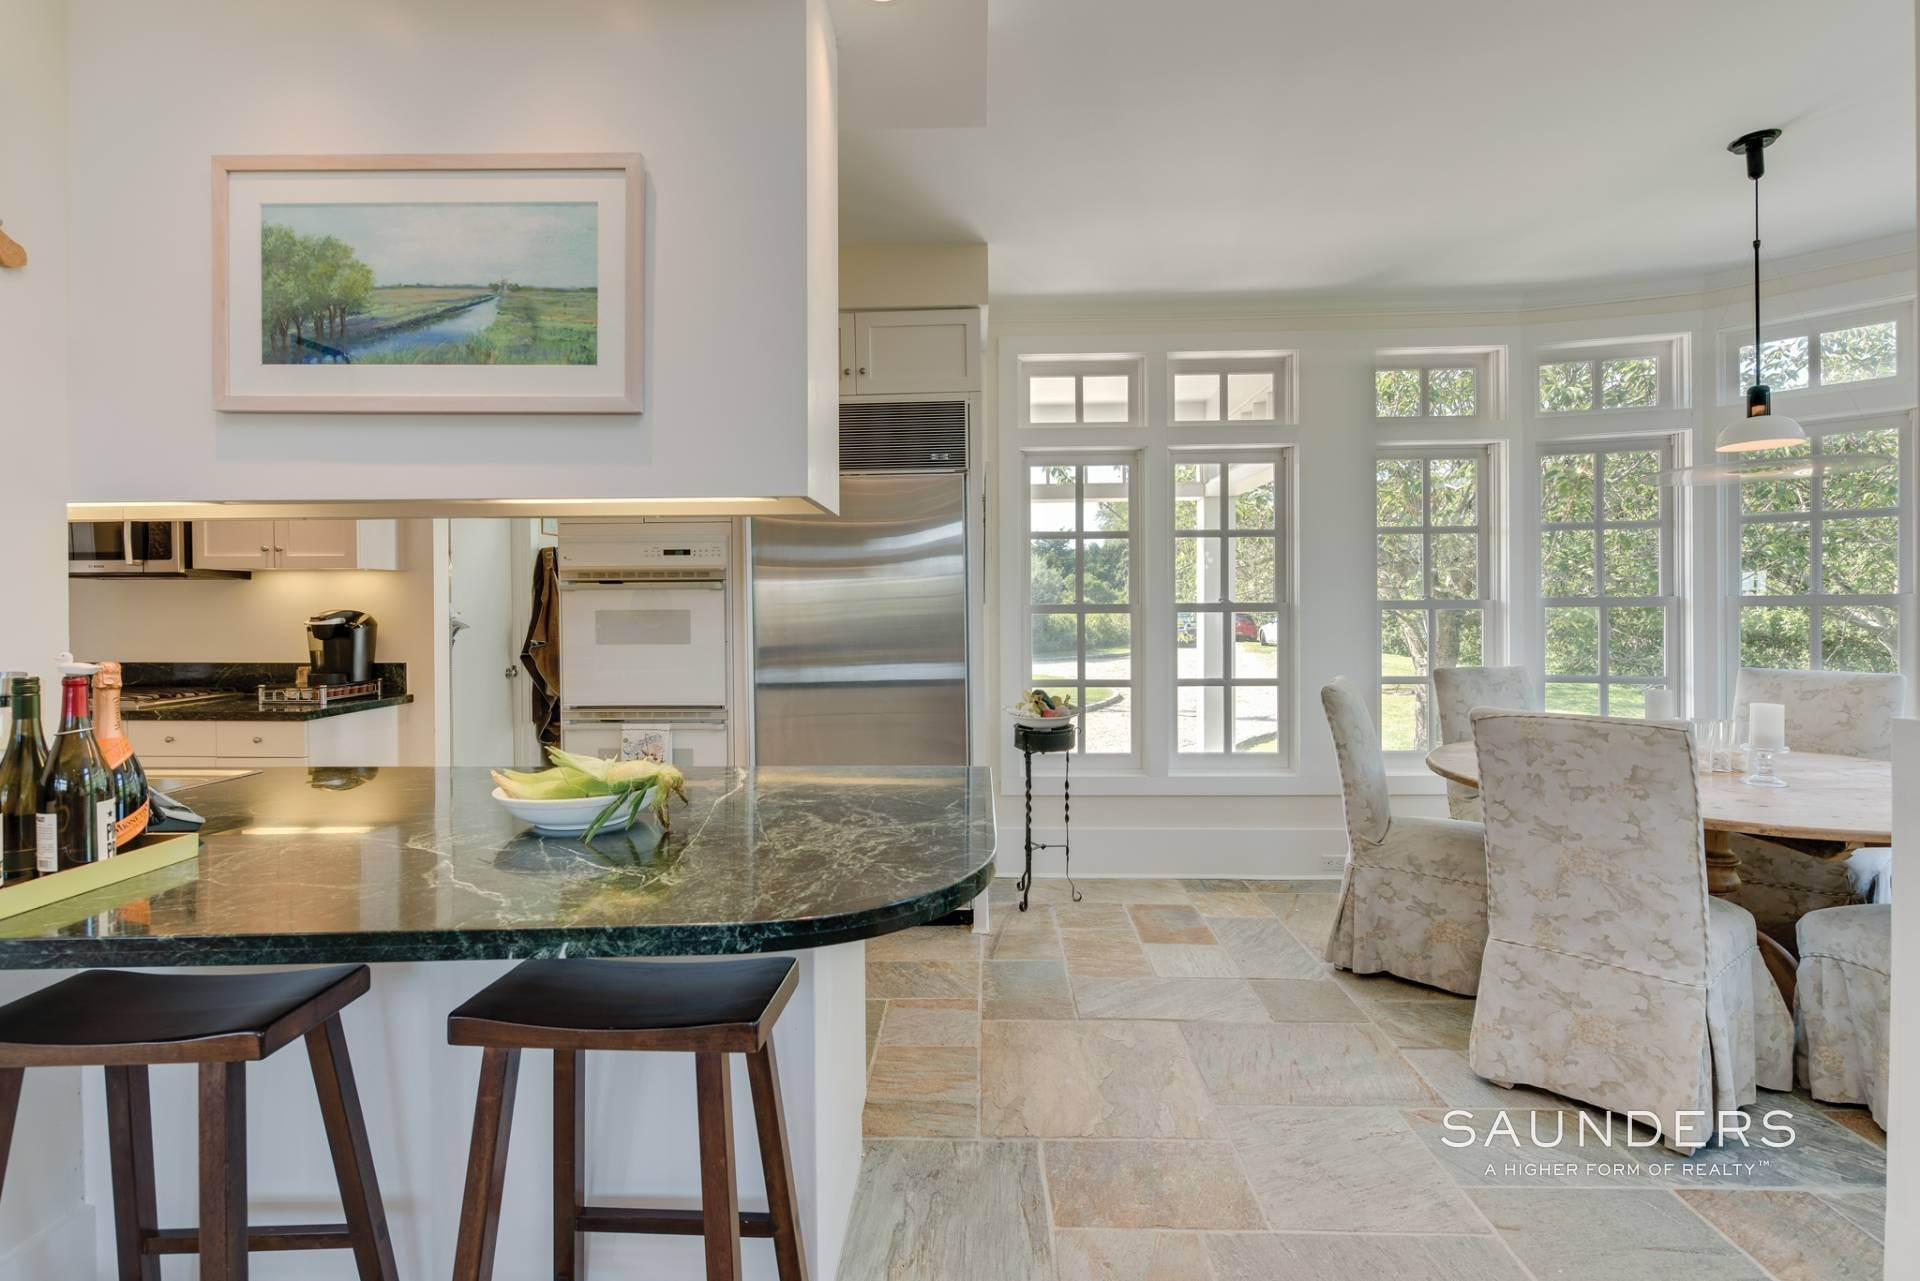 7. Single Family Homes for Sale at Bridgehampton South Waterfront With Dock & Ocean View 87 Rose Way, Bridgehampton, Southampton Town, NY 11932